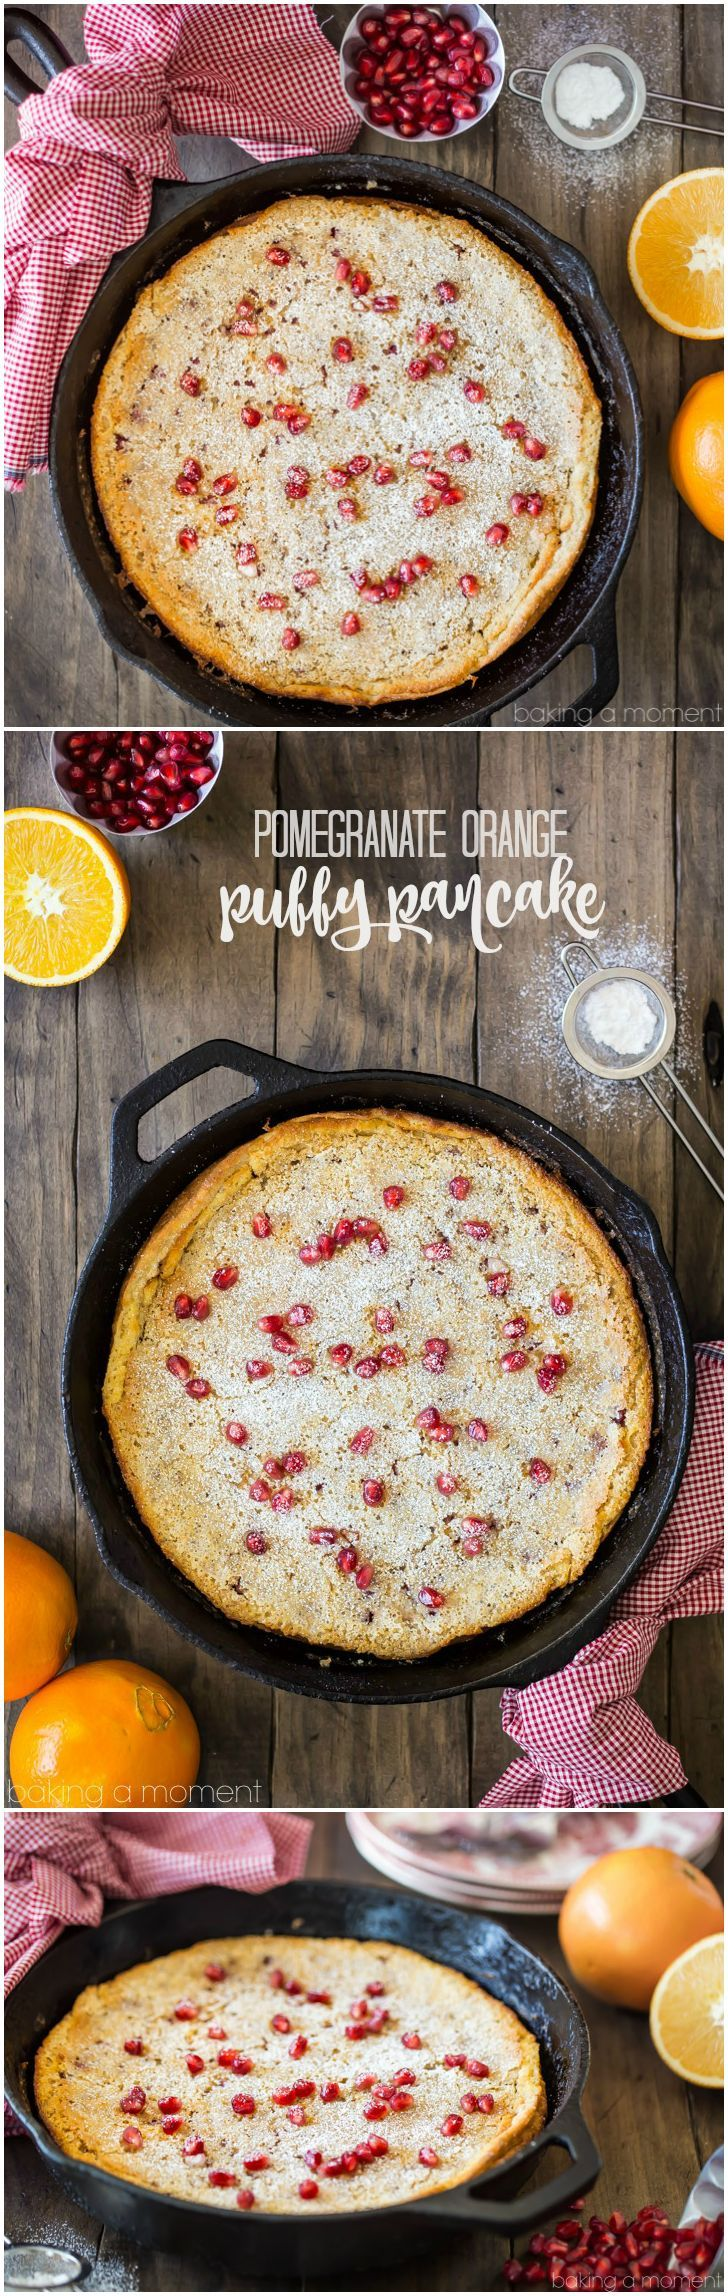 Start your weekend off right with this pomegranate orange puffy pancake! Dotted with tangy, seasonal pomegranate and infused with bright citrus. #RiseandShine